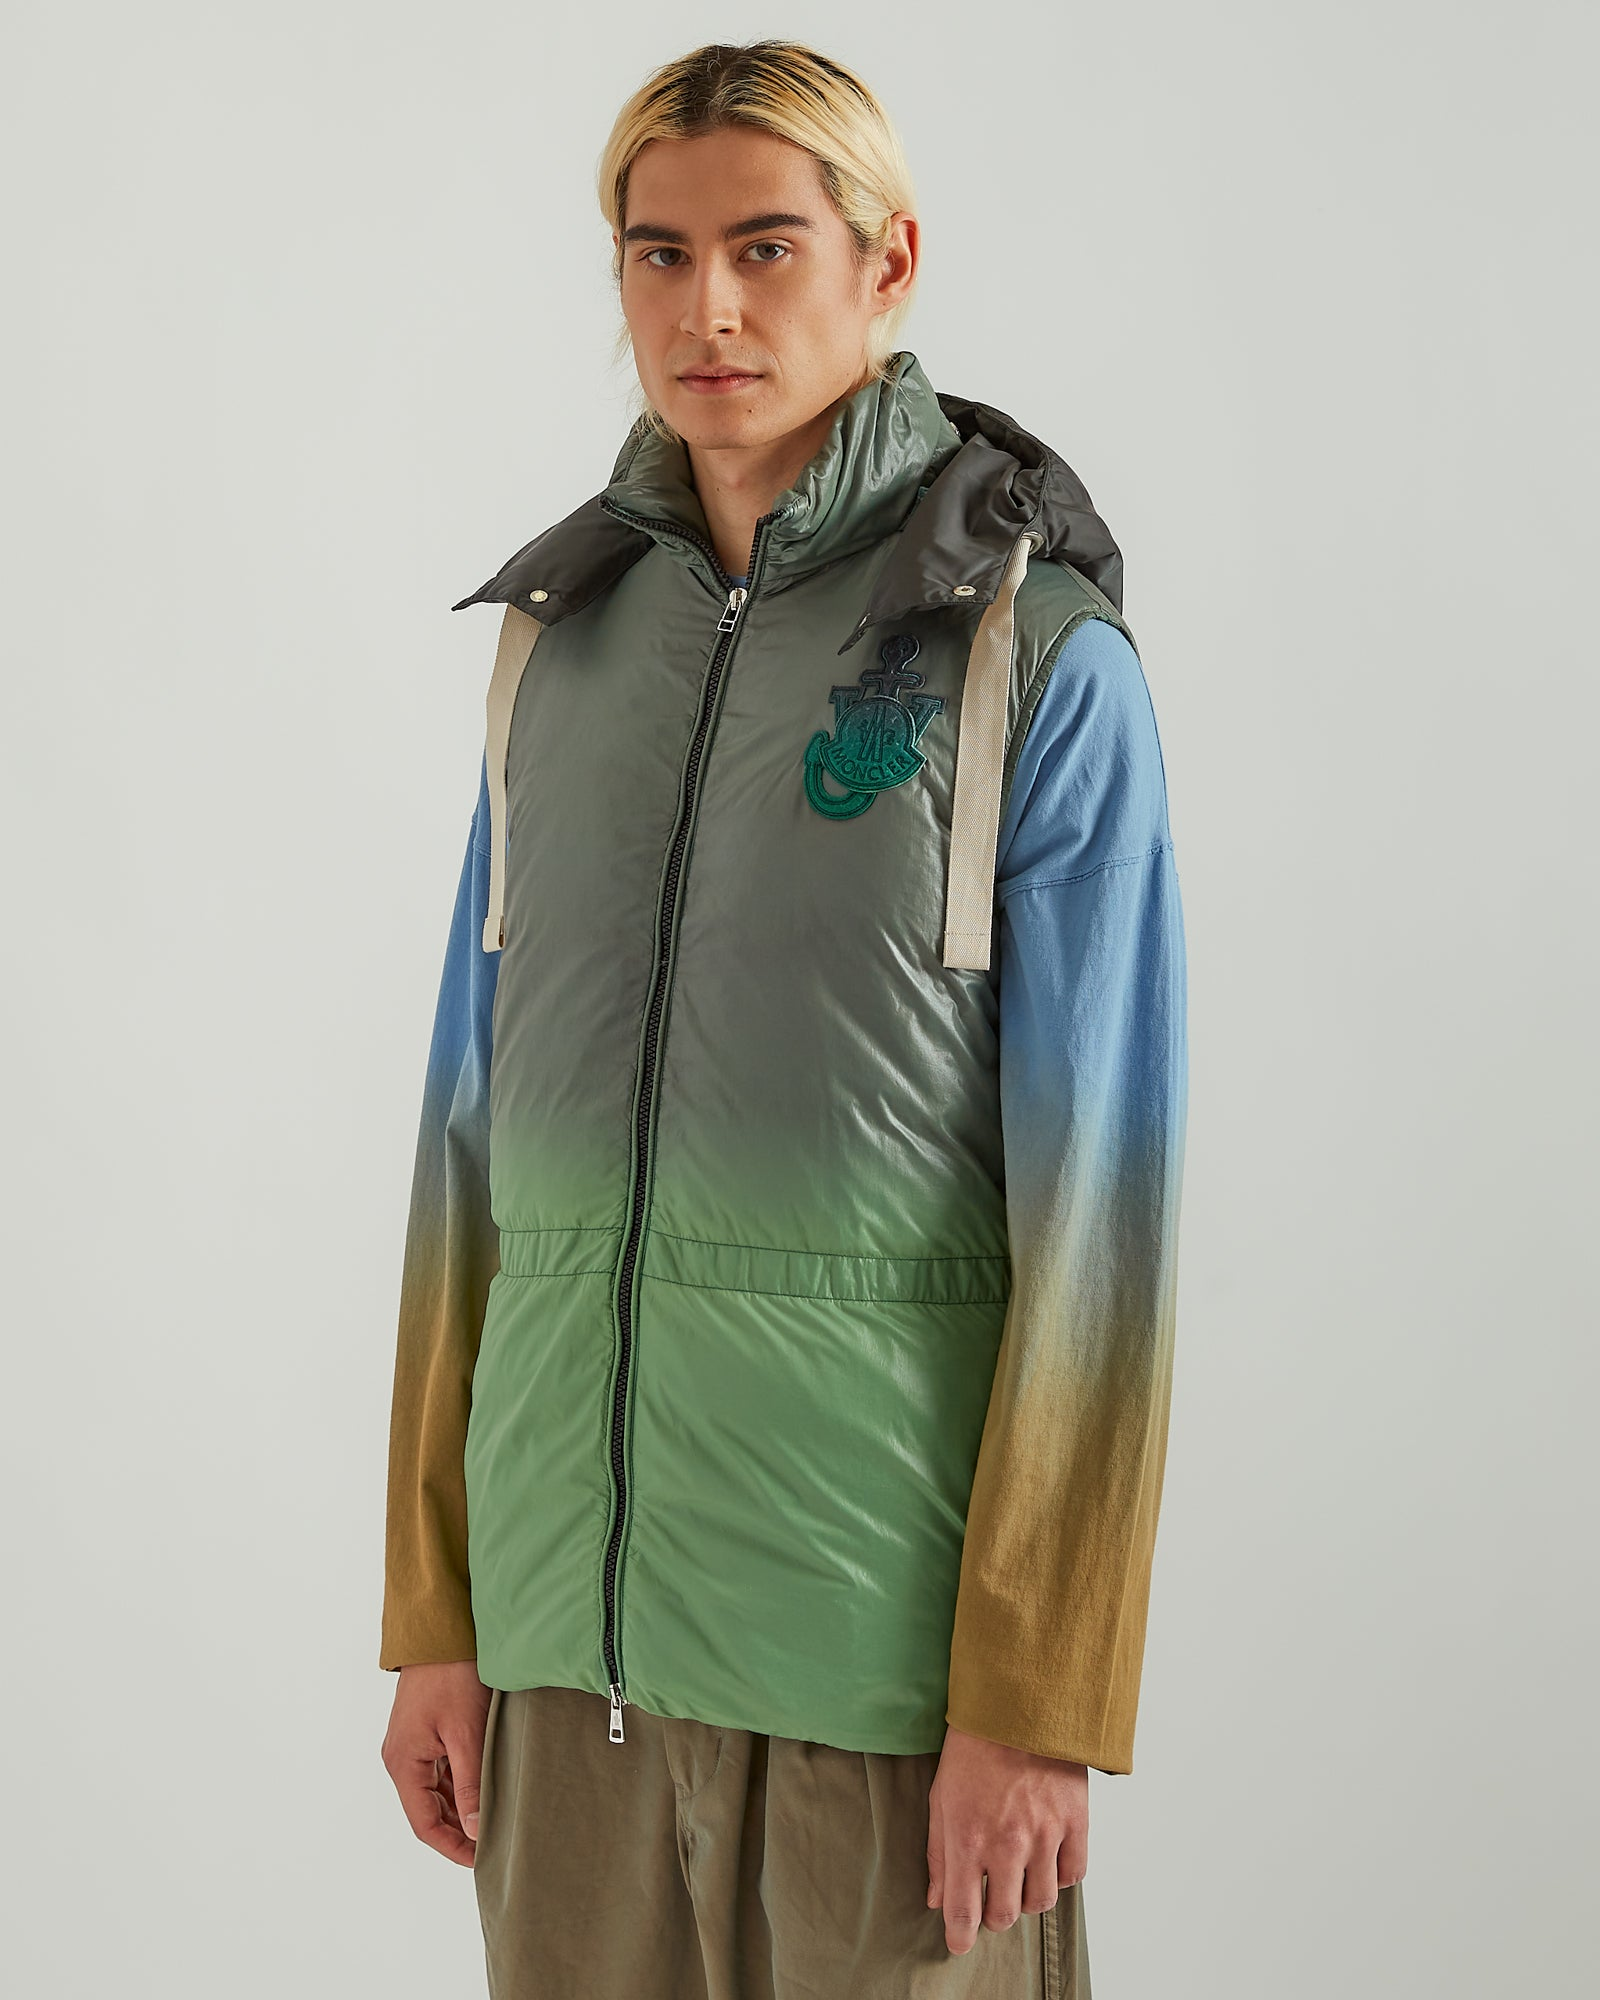 1Moncler JW Anderson Chesil Down Vest in Green